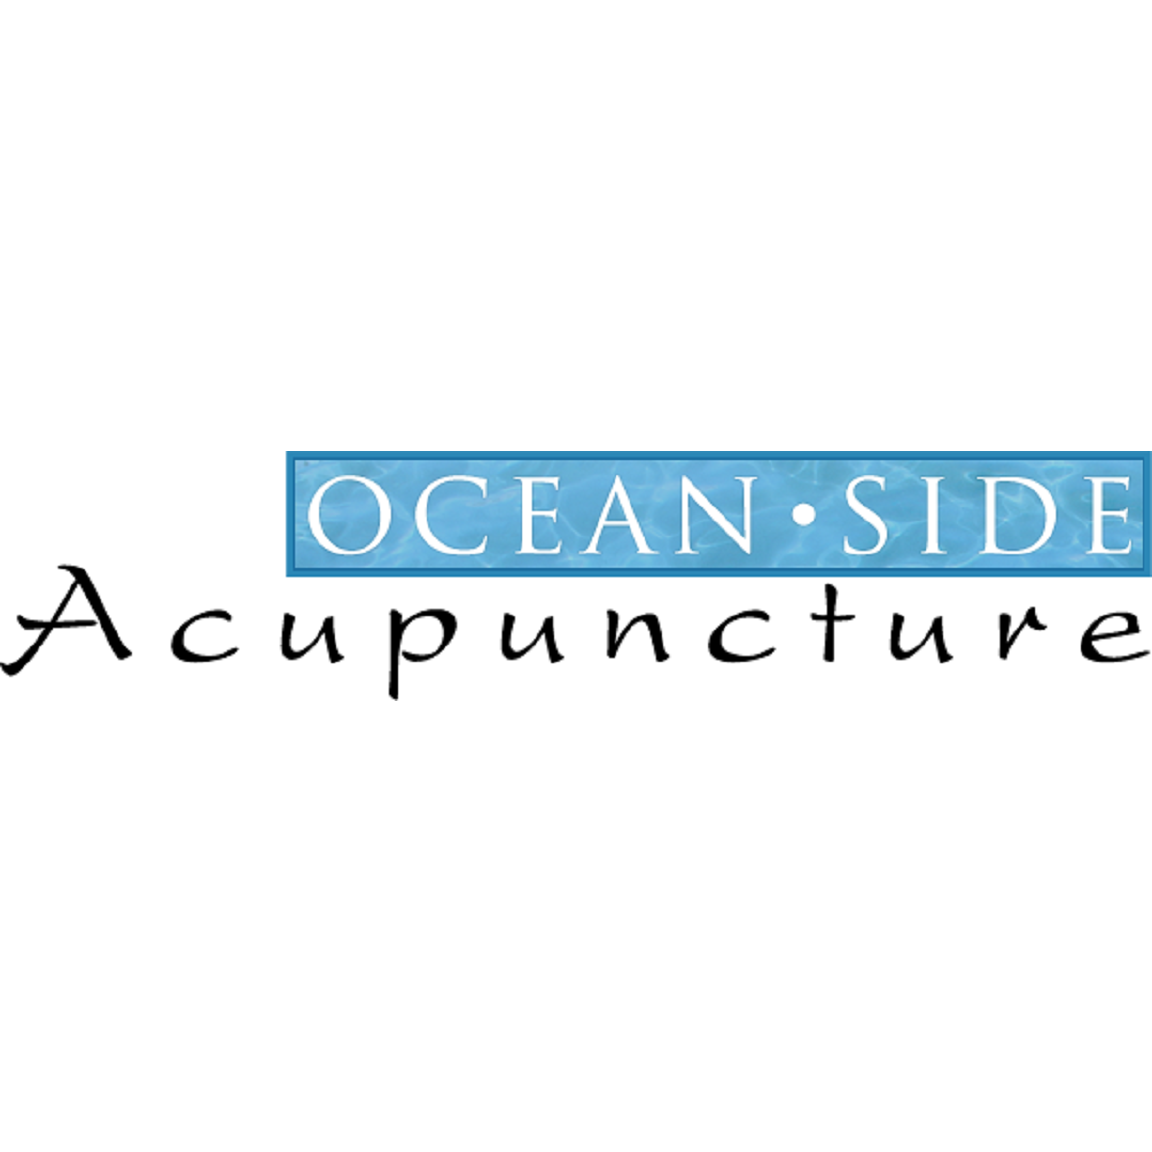 Ocean Side Acupuncture - Redondo Beach, CA - Acupuncture